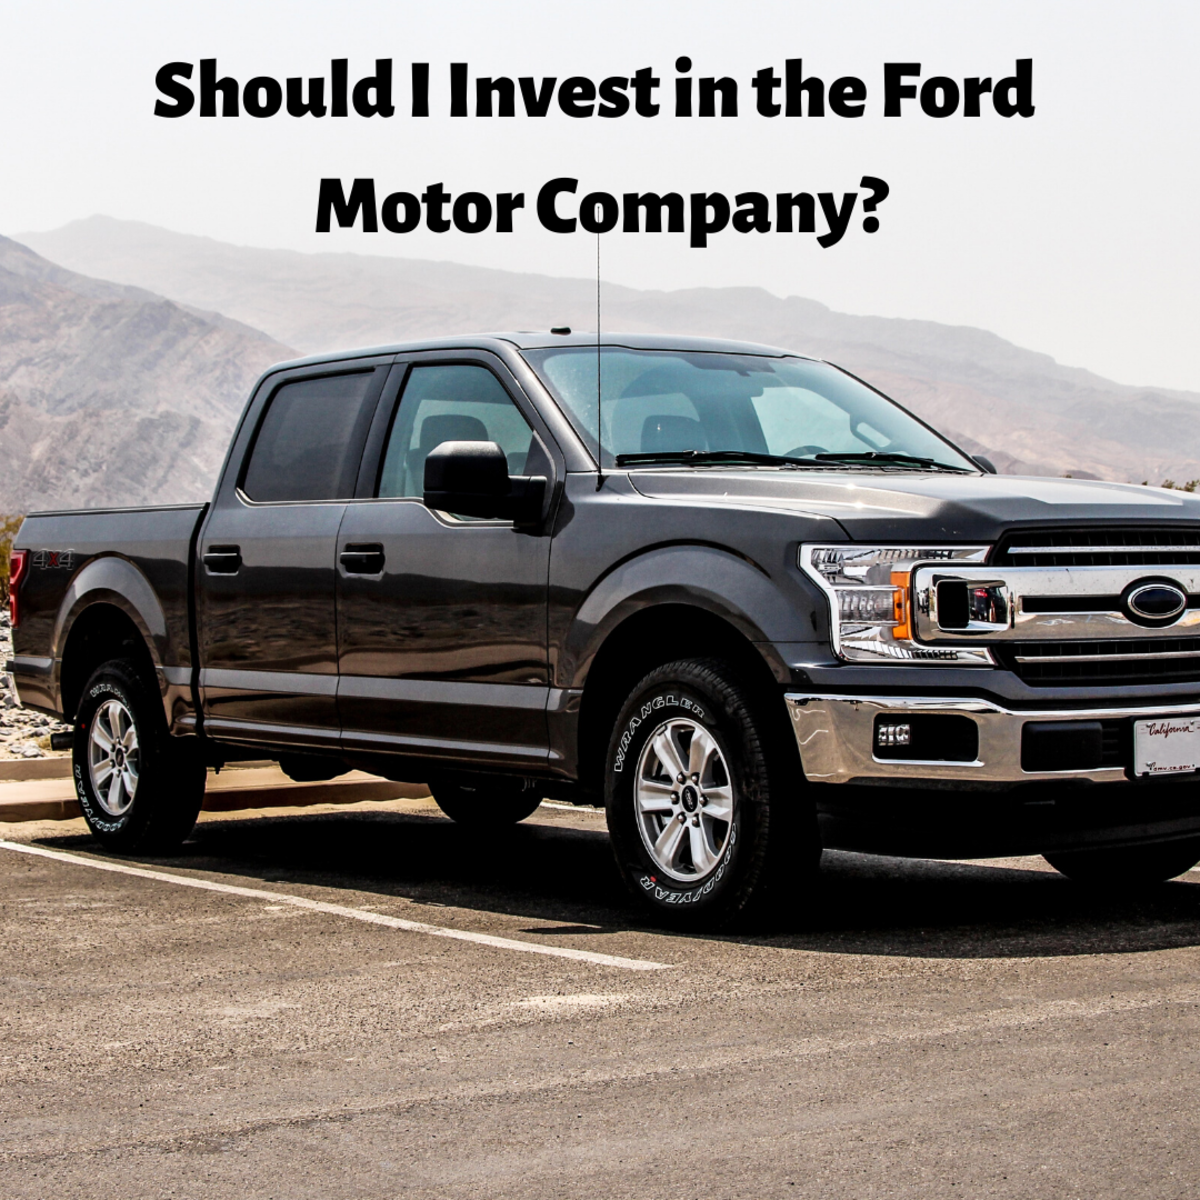 Is it smart to invest in the Ford Motor Company. Read on to learn more.